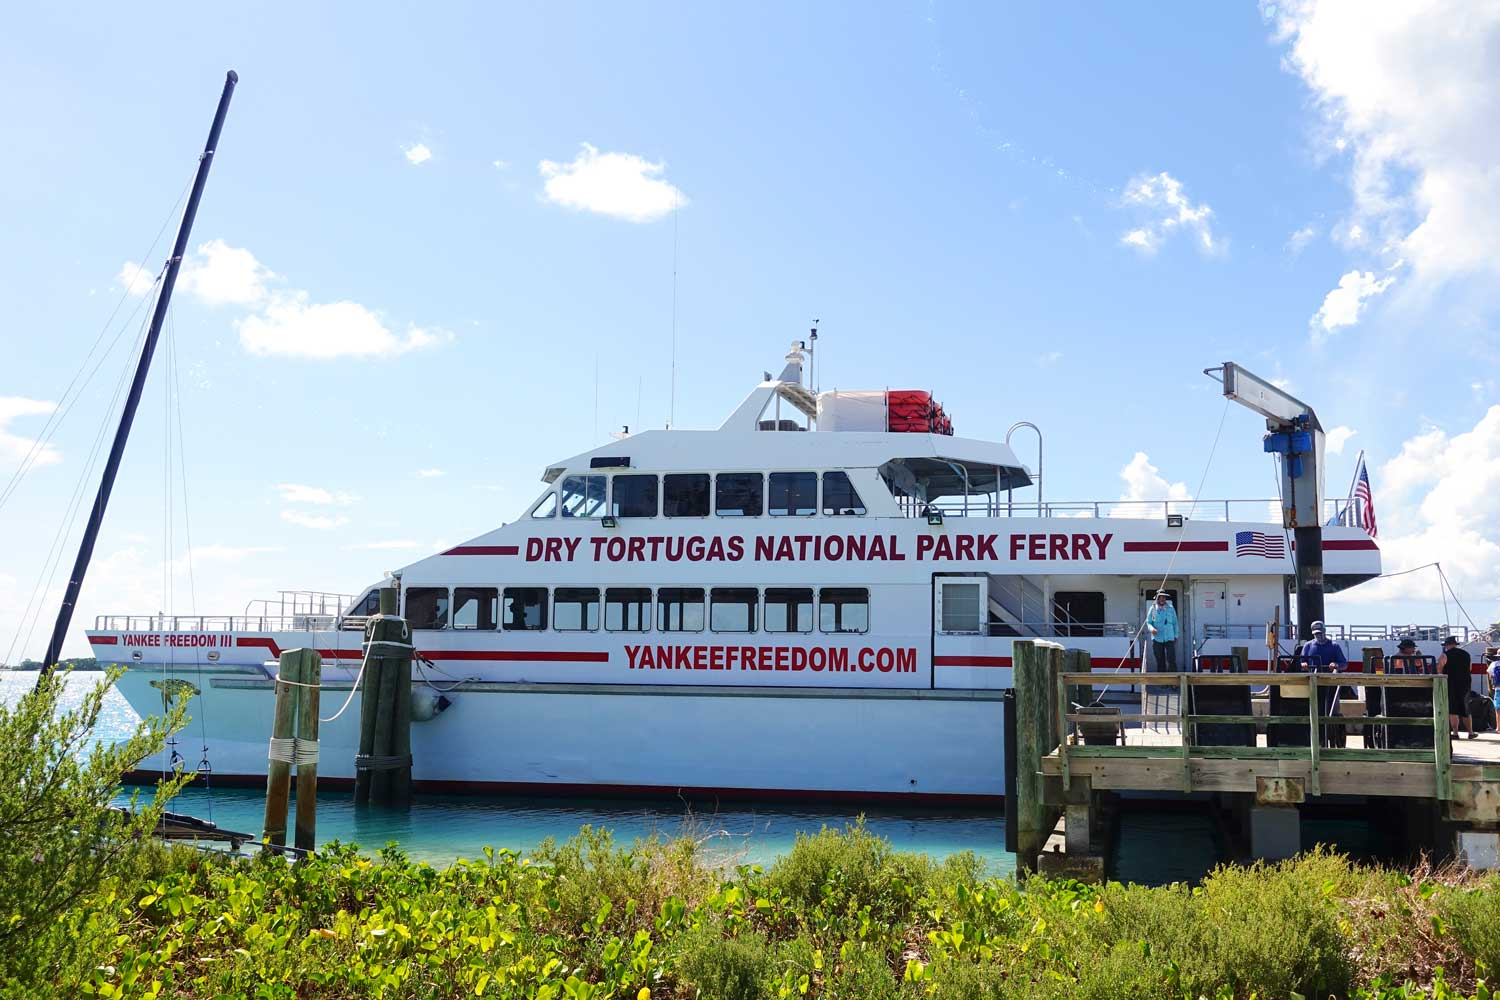 dry tortugas national park ferry